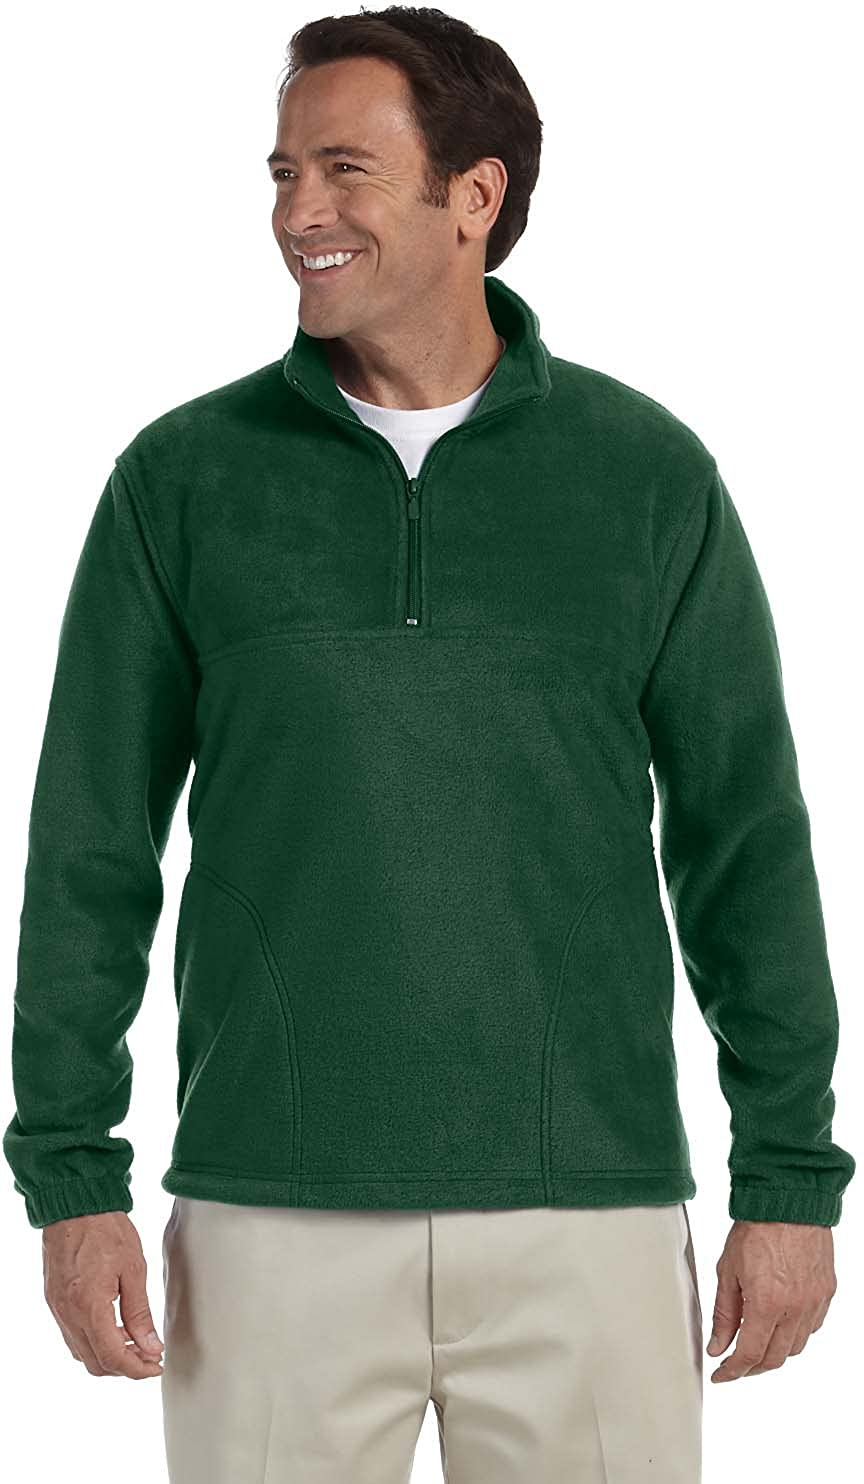 Quarter-Zip Fleece Pullover - BLACK - S 8 oz. Quarter-Zip Fleece ...